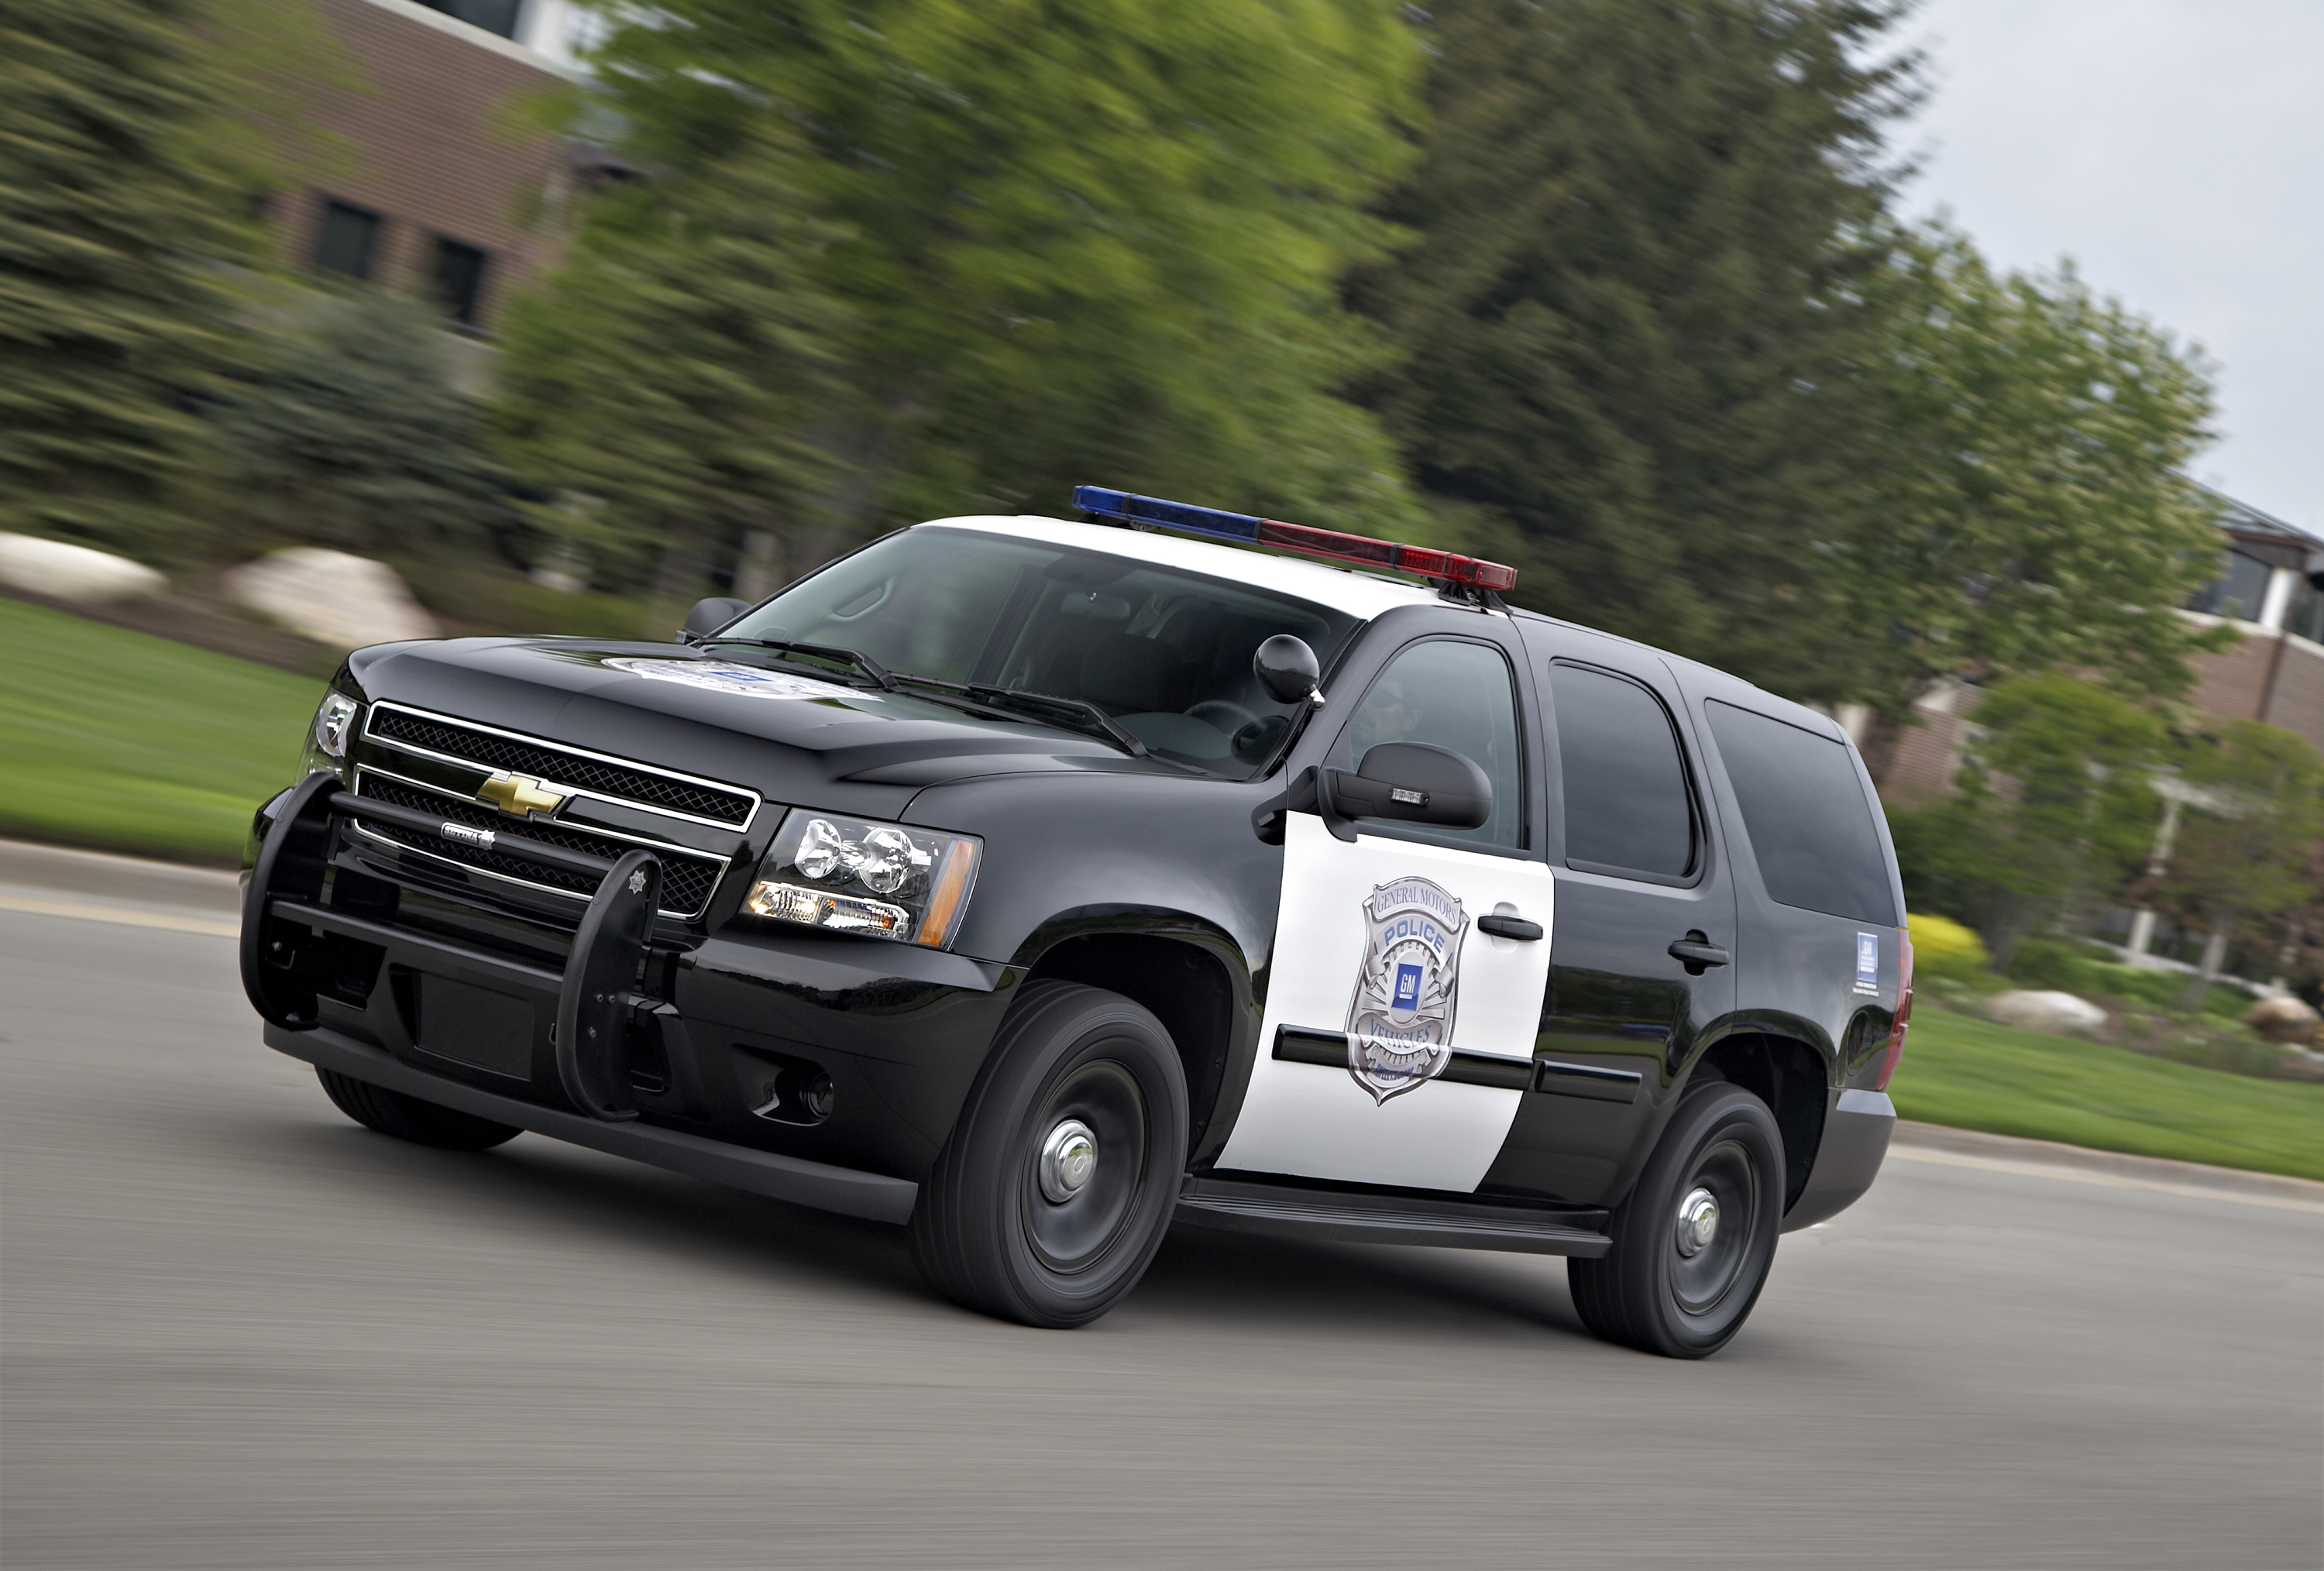 gallery v image gta chevy tahoe galleries com lcpdfr large chevrolet